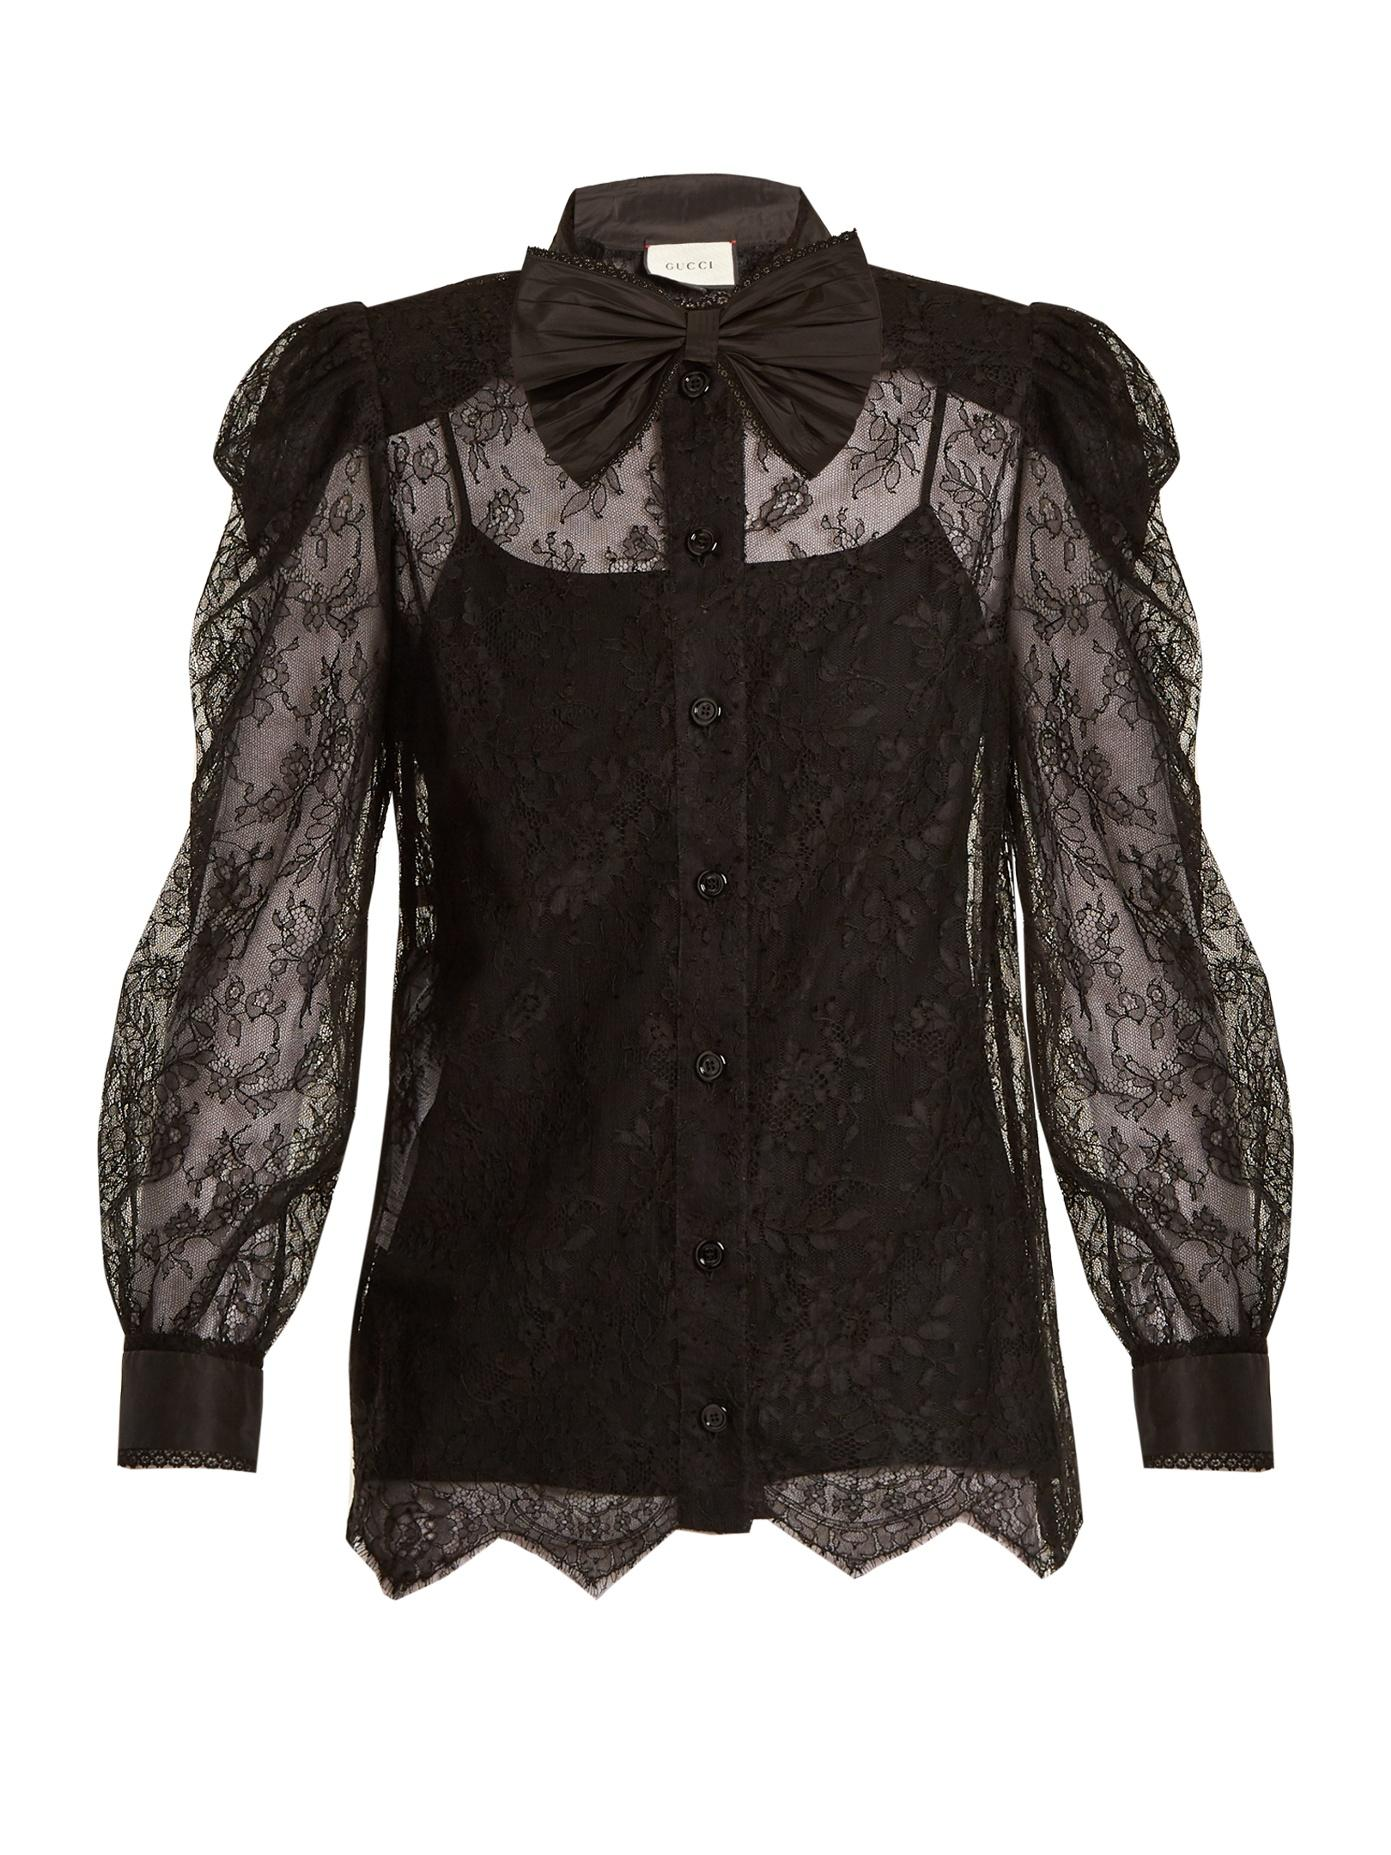 41b1b5e5f3bc2 Gucci Pussy-Bow Chantilly Lace Blouse In Black